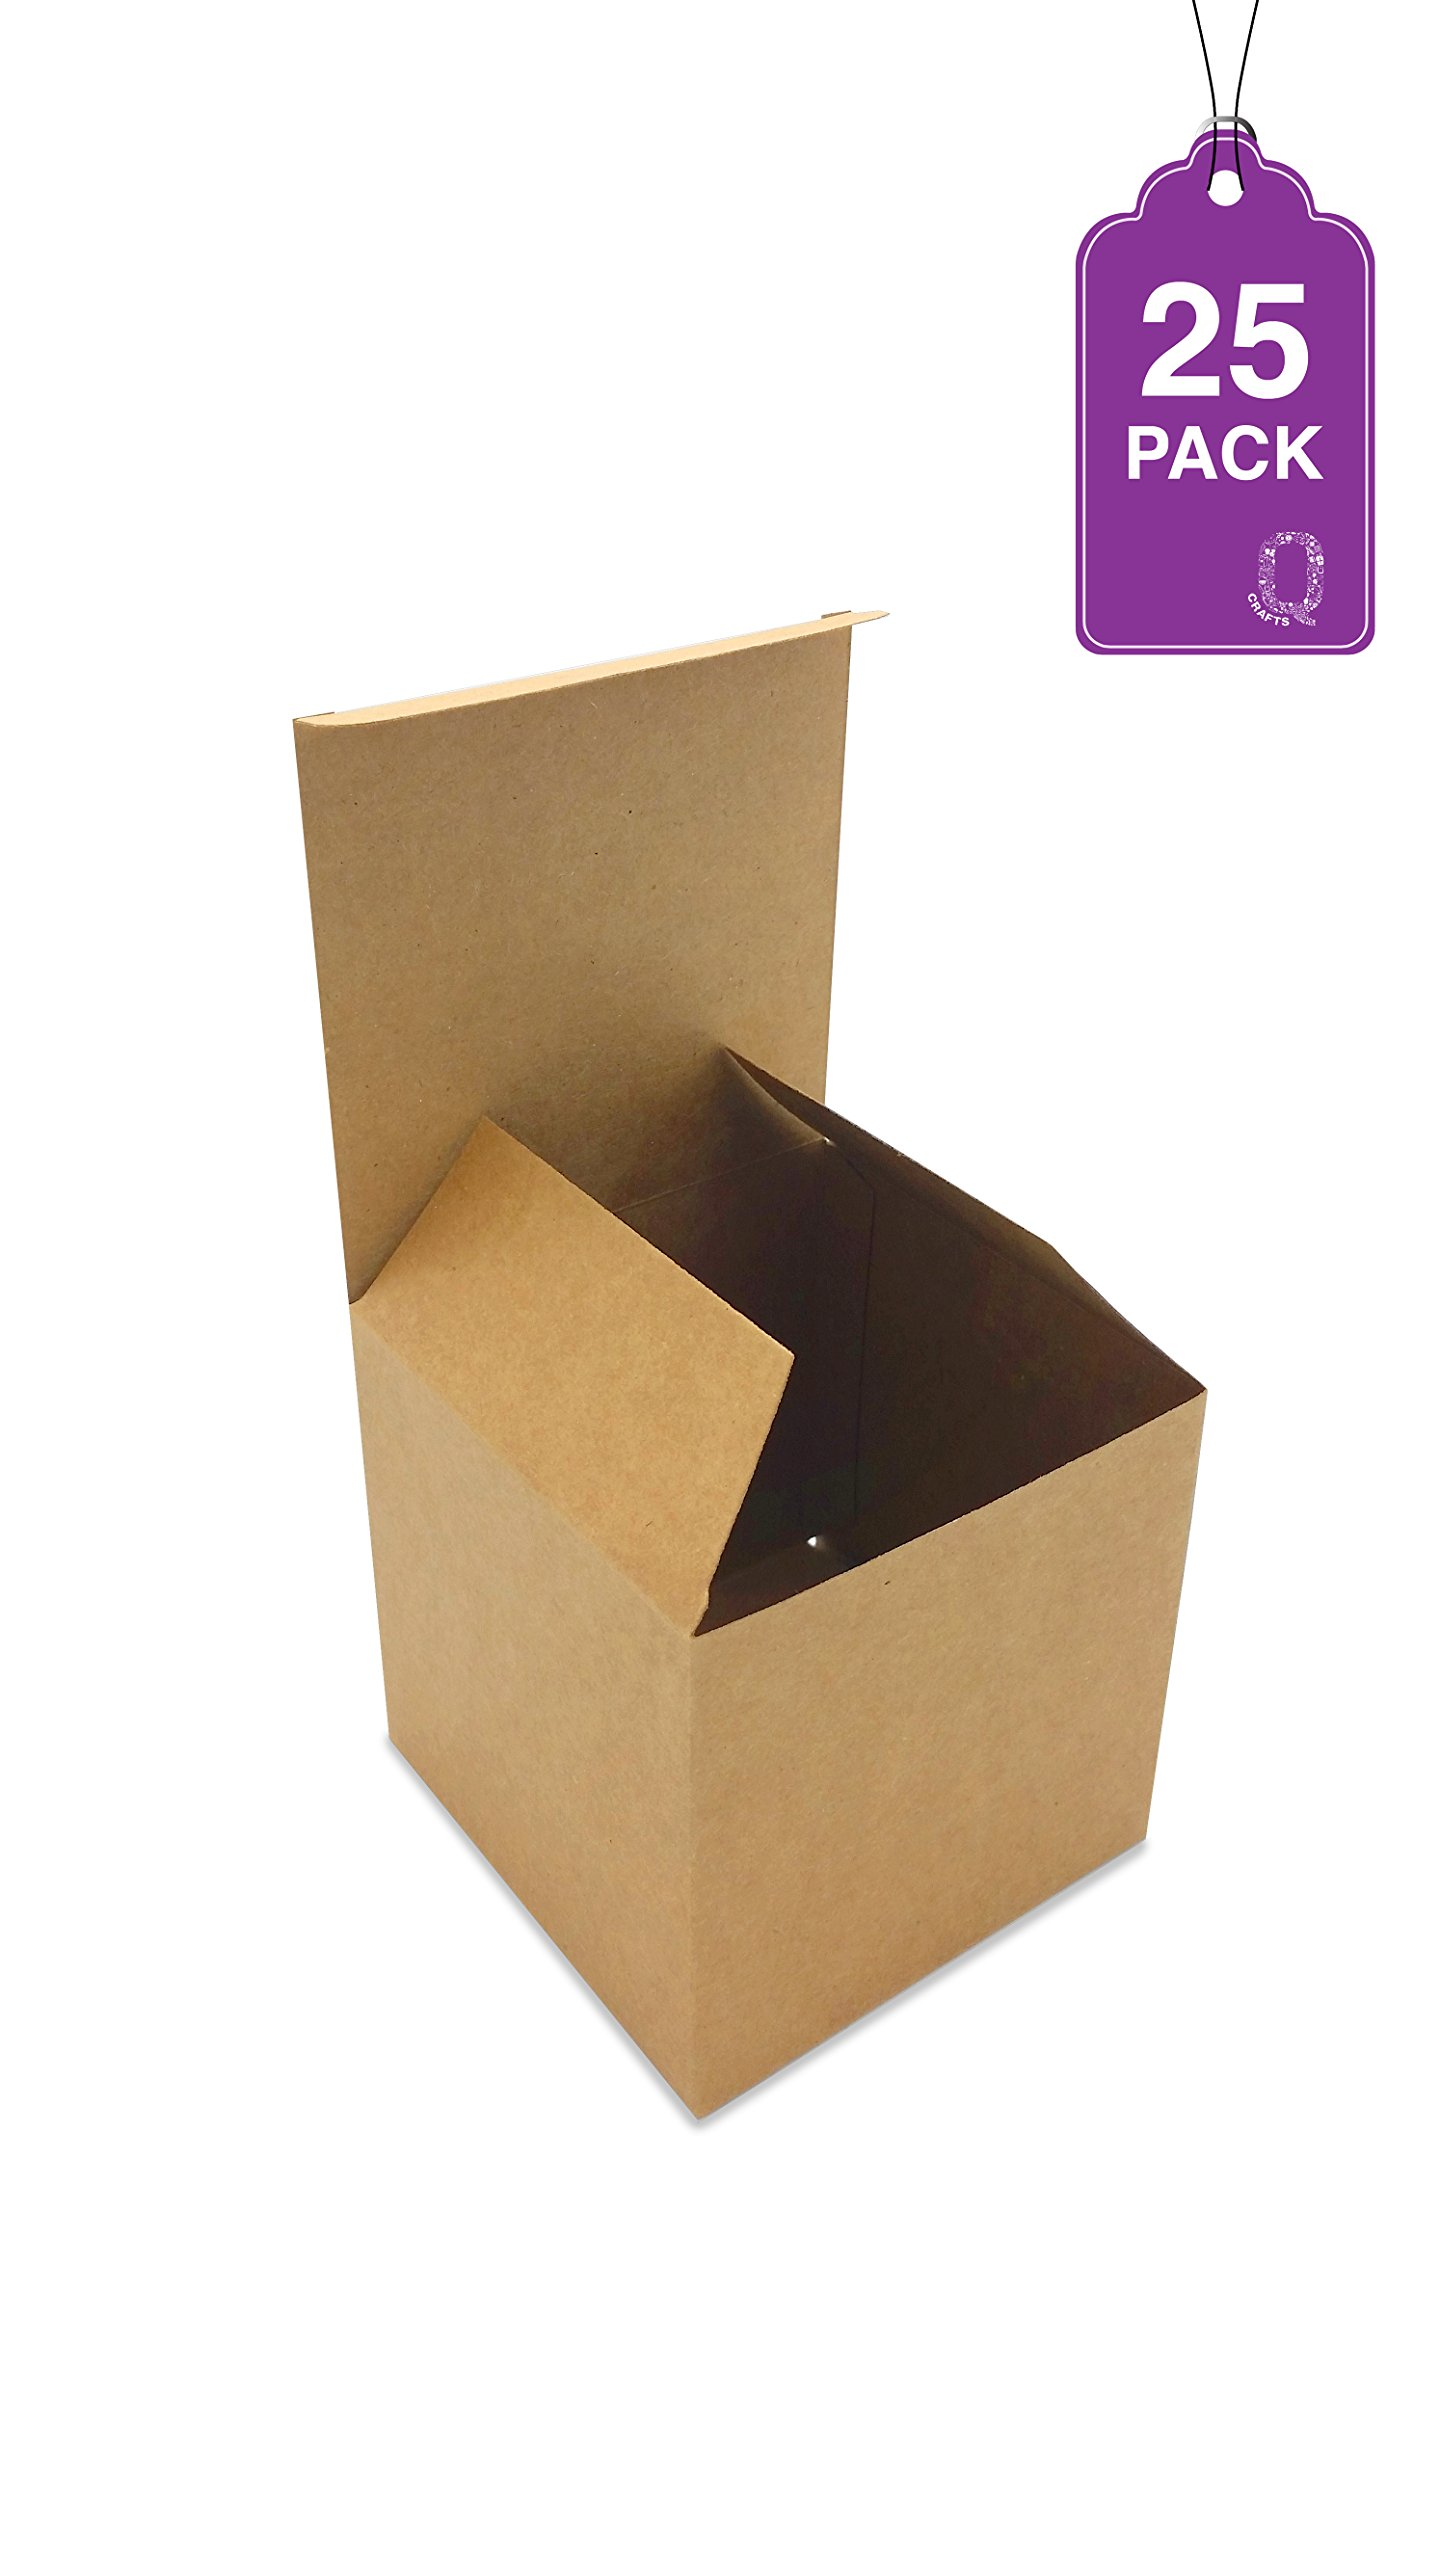 Gift Boxes Brown Kraft 25 Pack 4 x 4 x 4 Great For All Occasions Cupcake boxes, Craft box